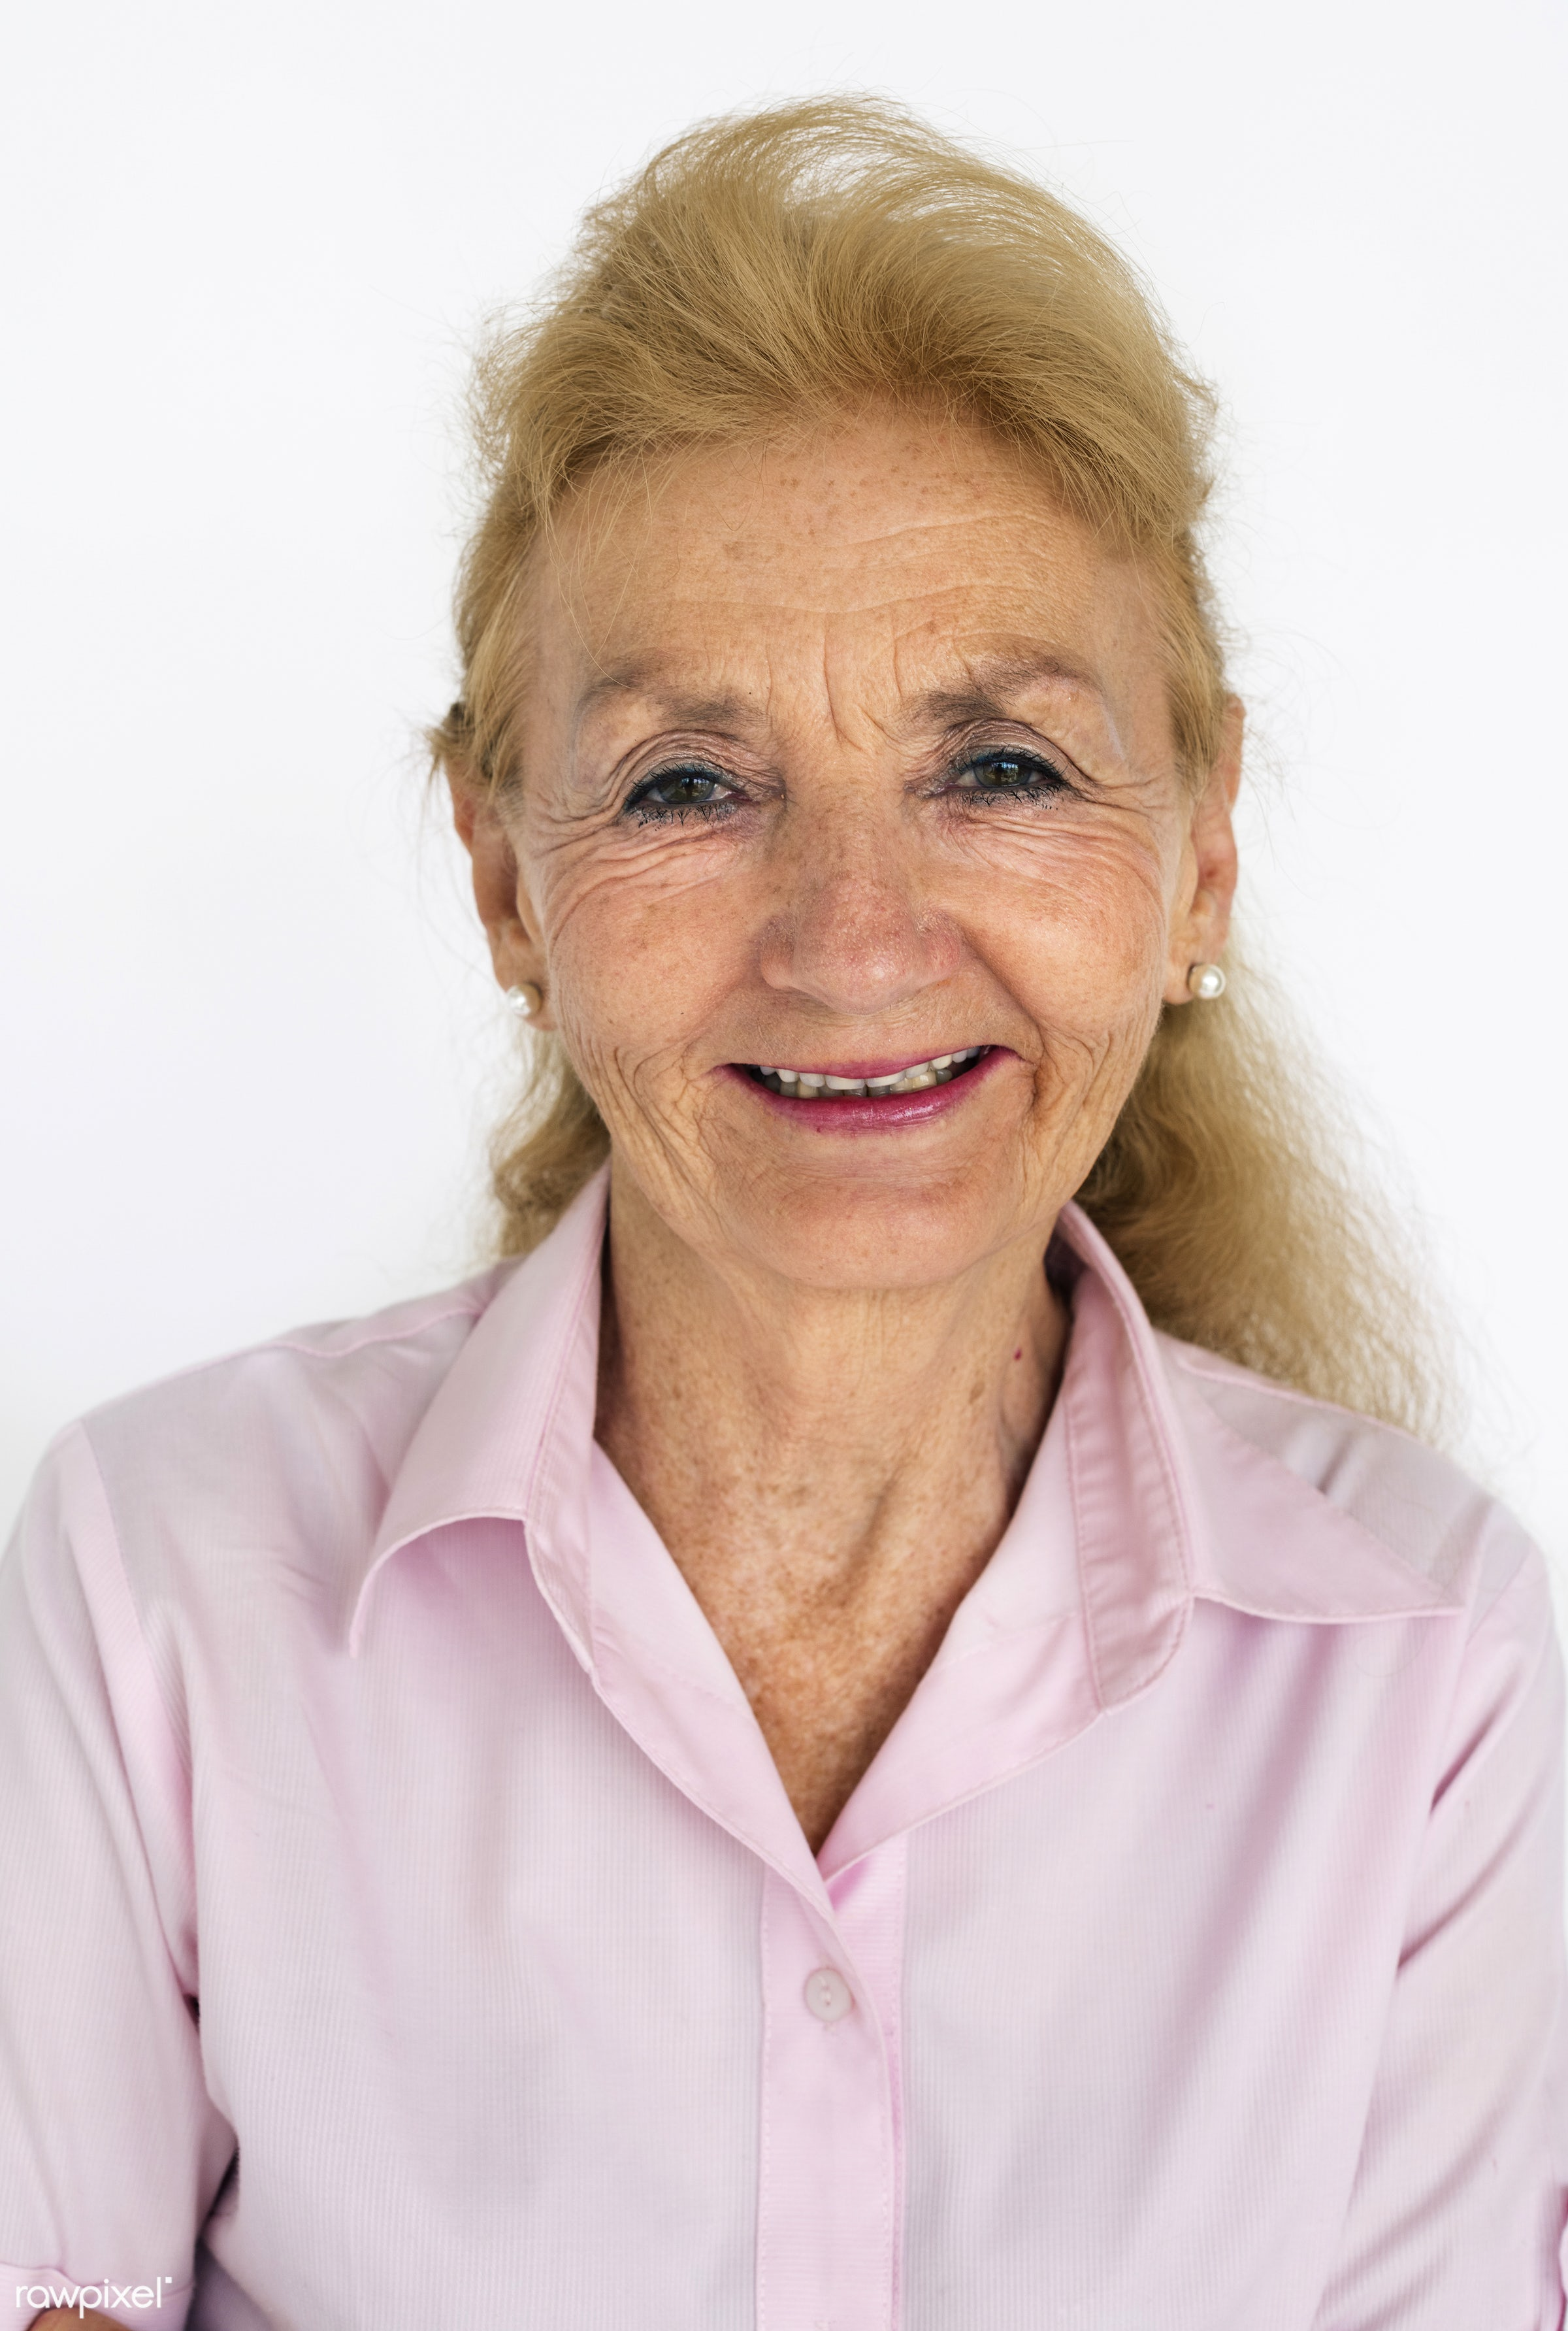 studio, expression, old, person, bright, caucasian, aged, retirement, relaxed, woman, lifestyle, positive, smile, alone,...